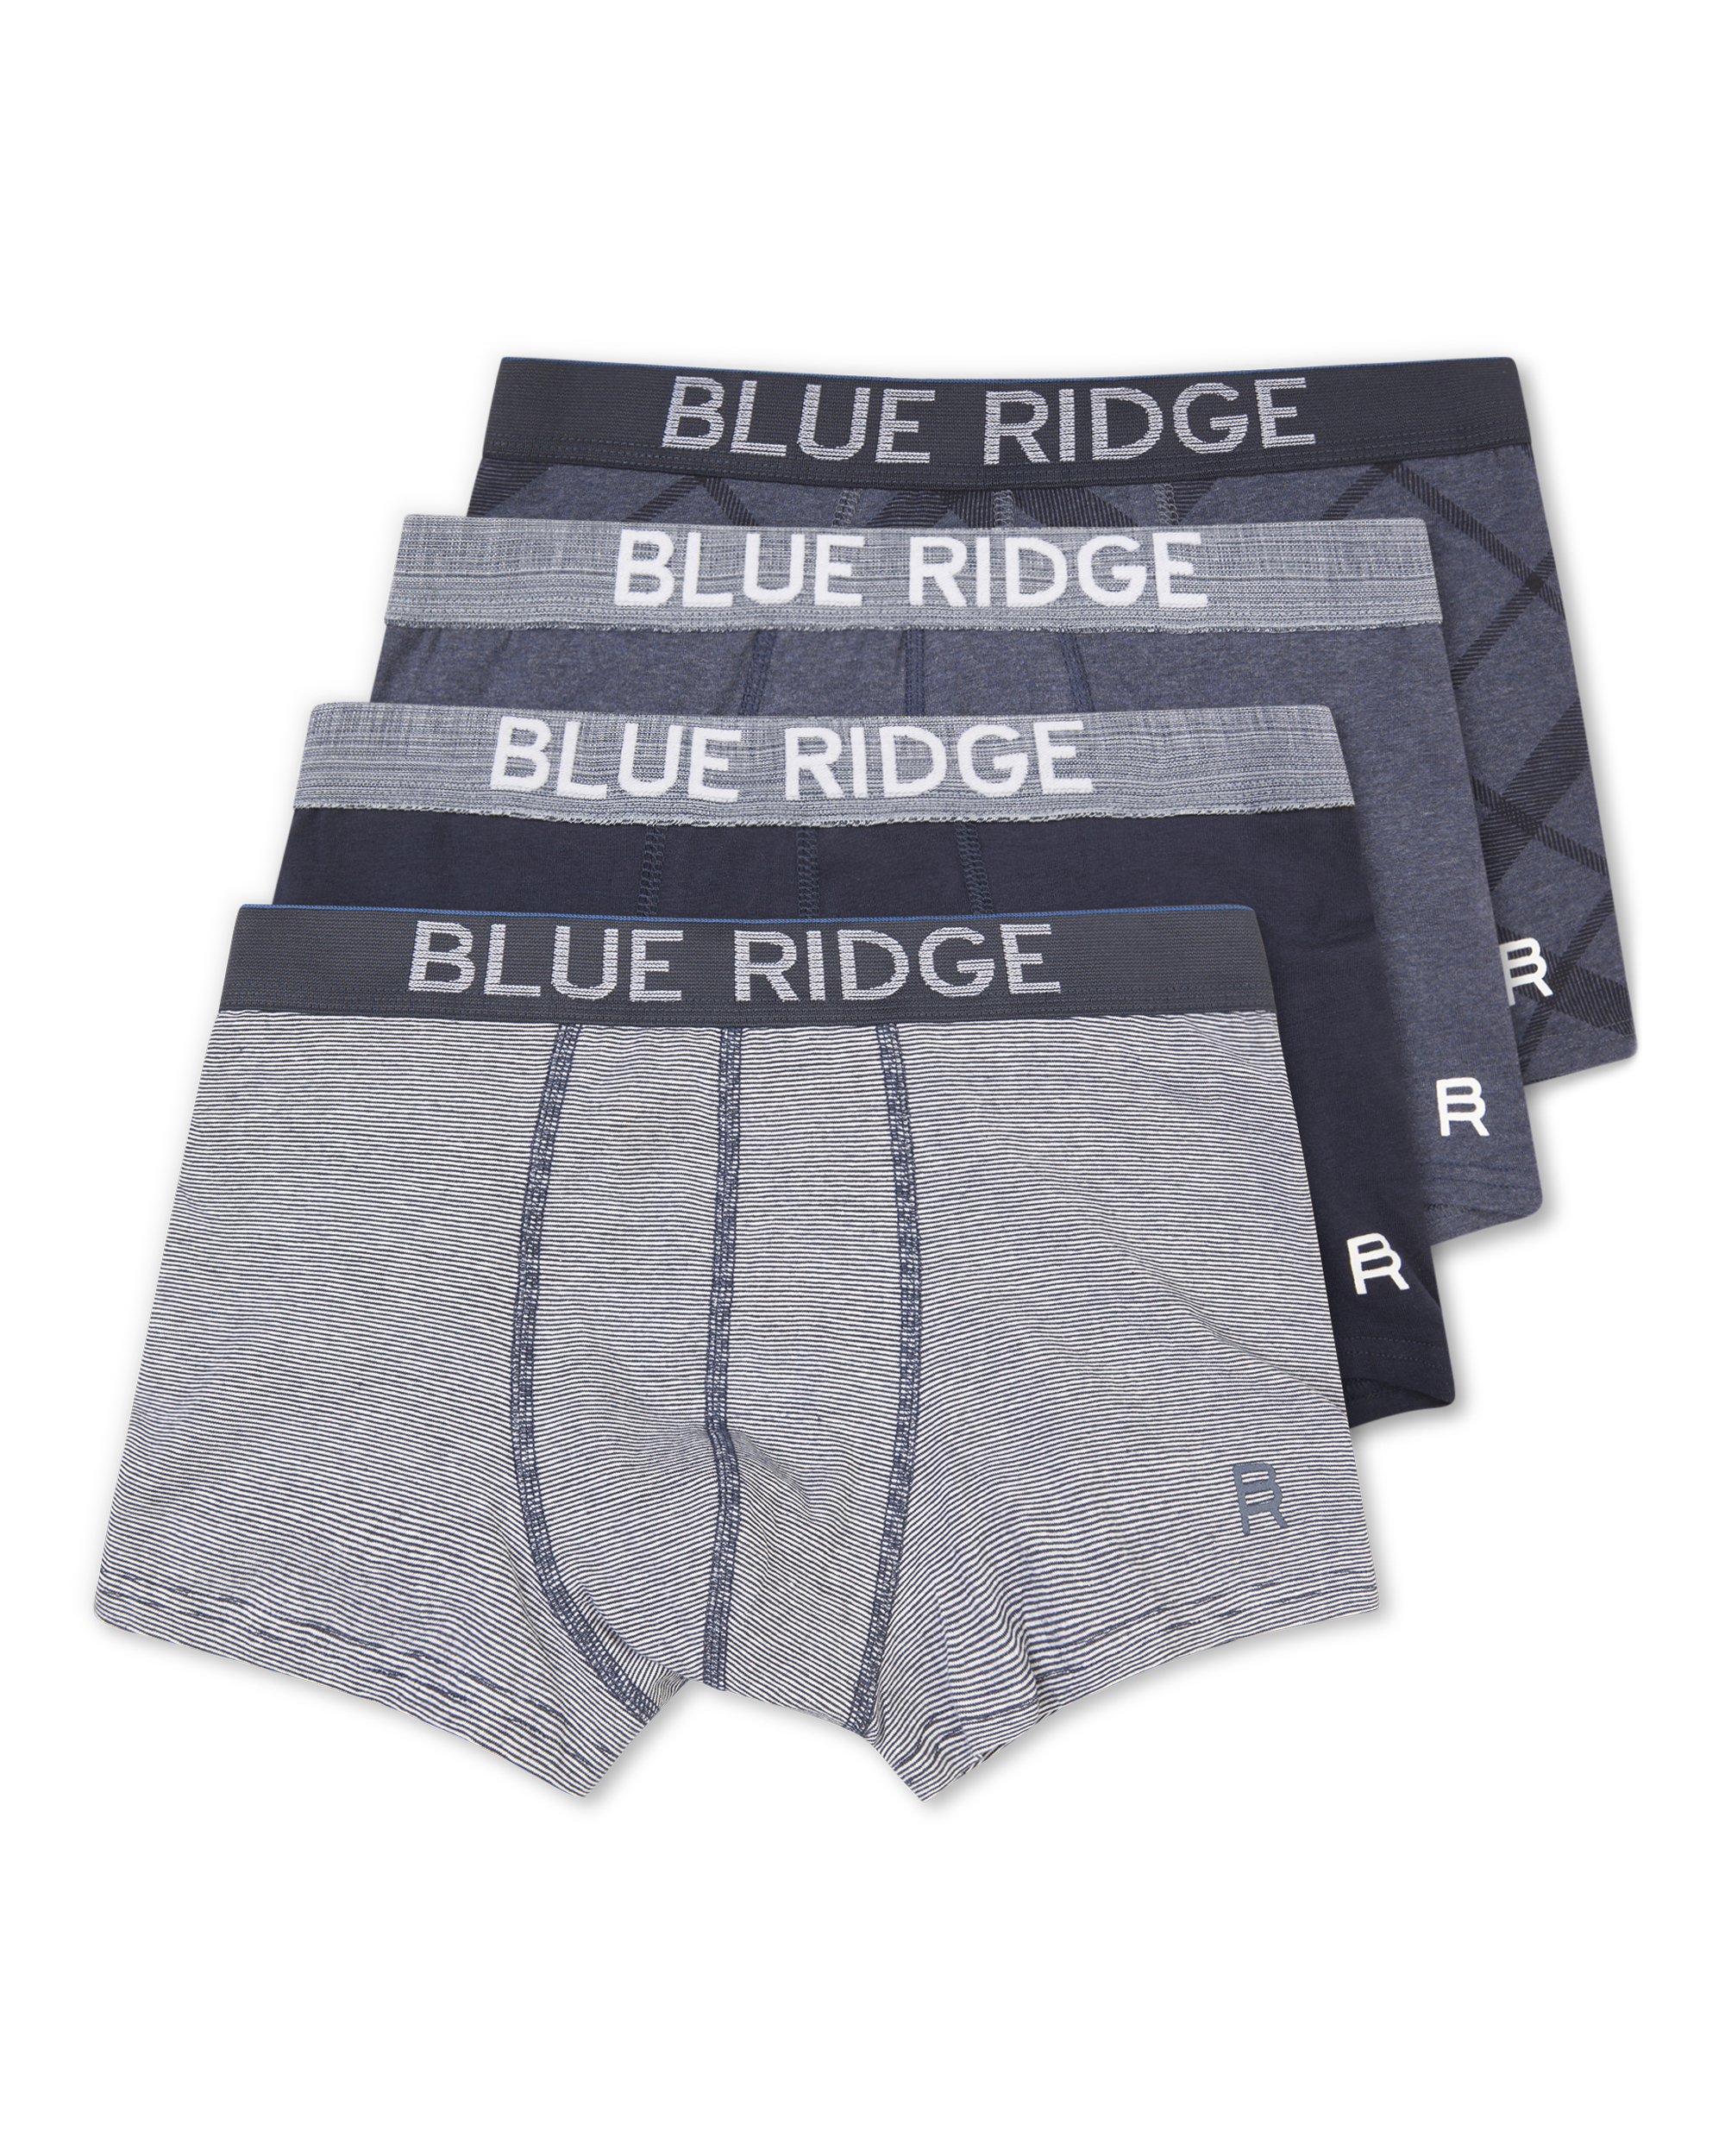 Heren blue ridge boxershorts 4-pack